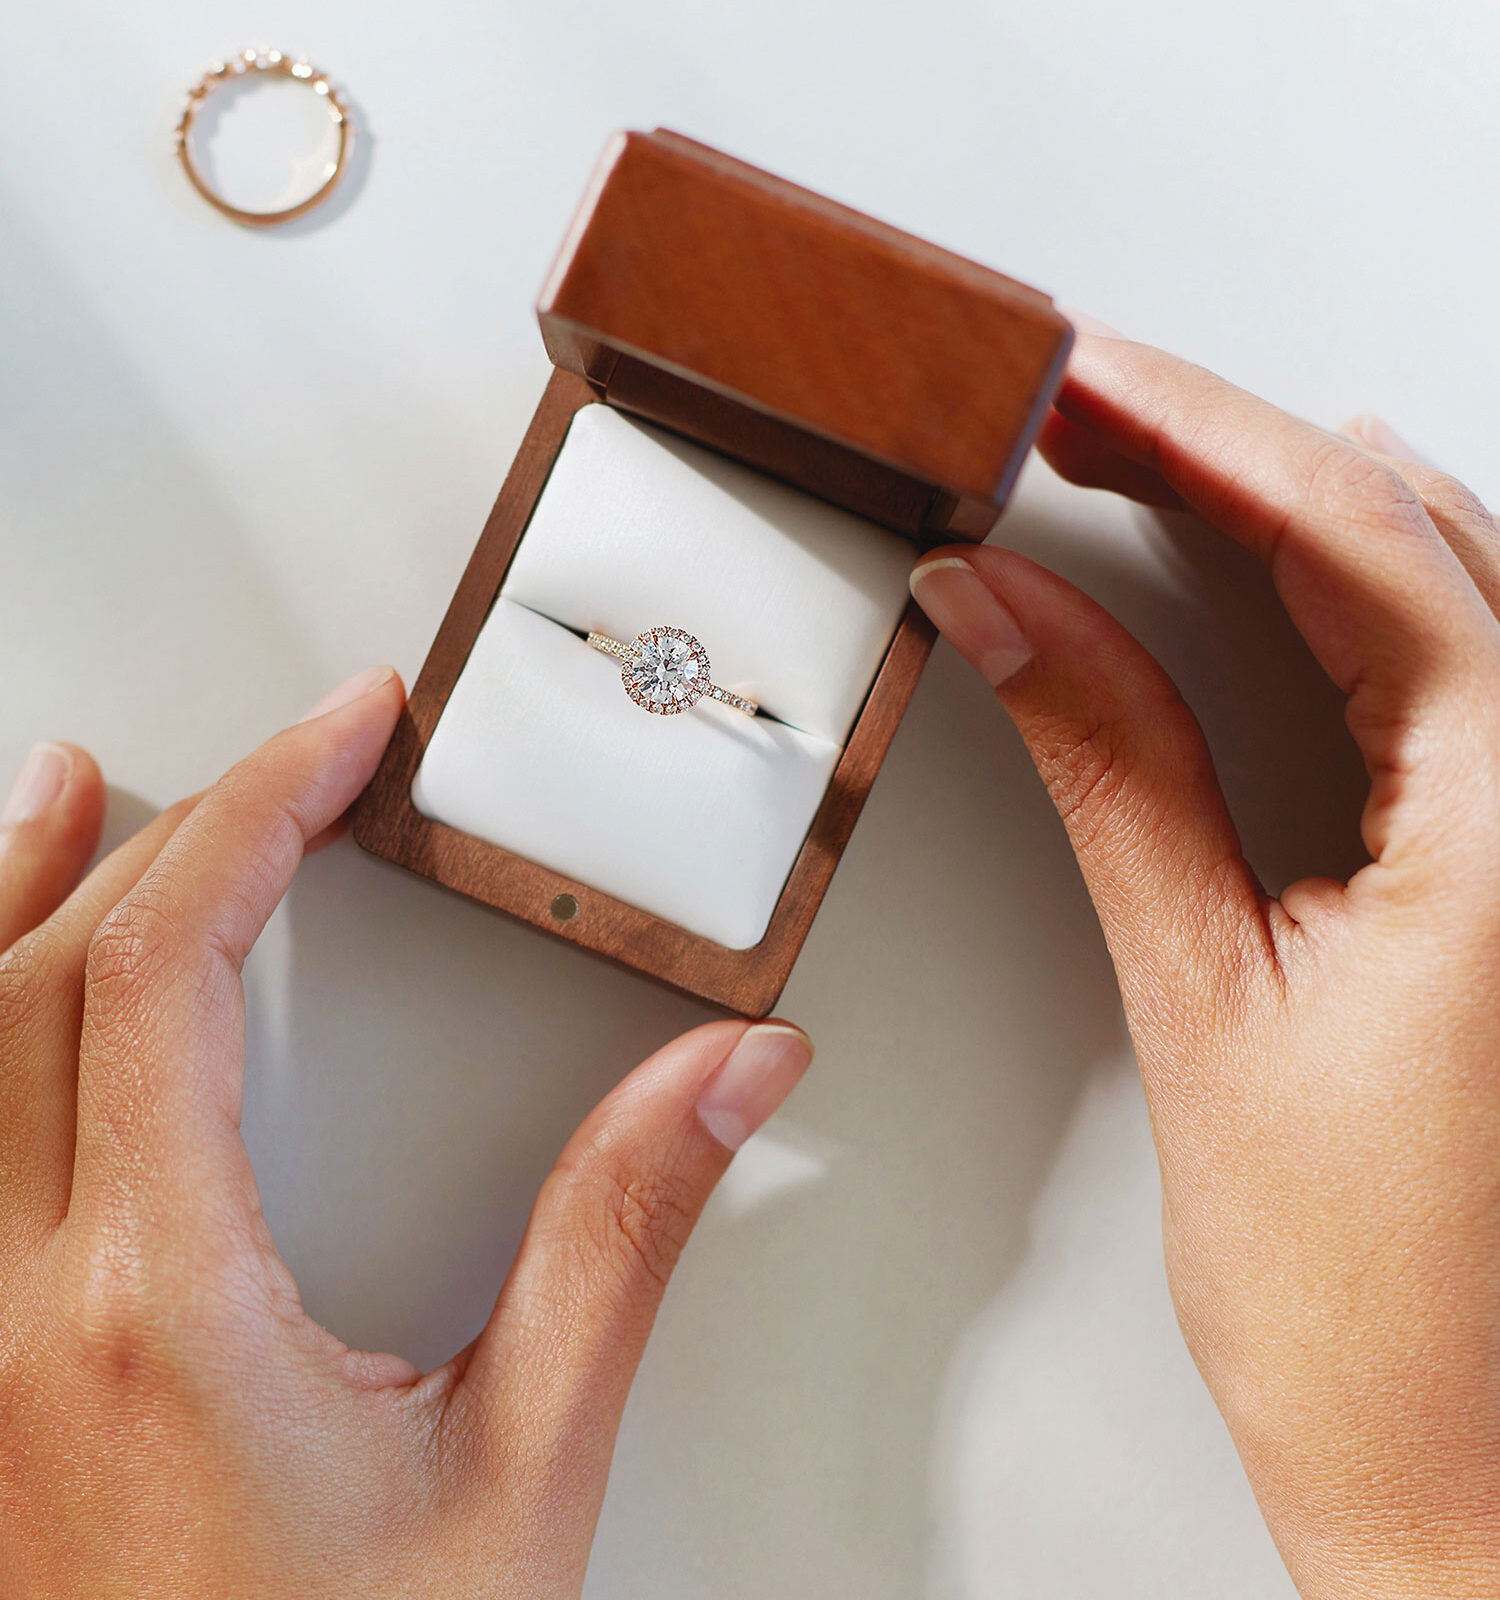 woman's hands holding open a jewelry box containing a diamond ring